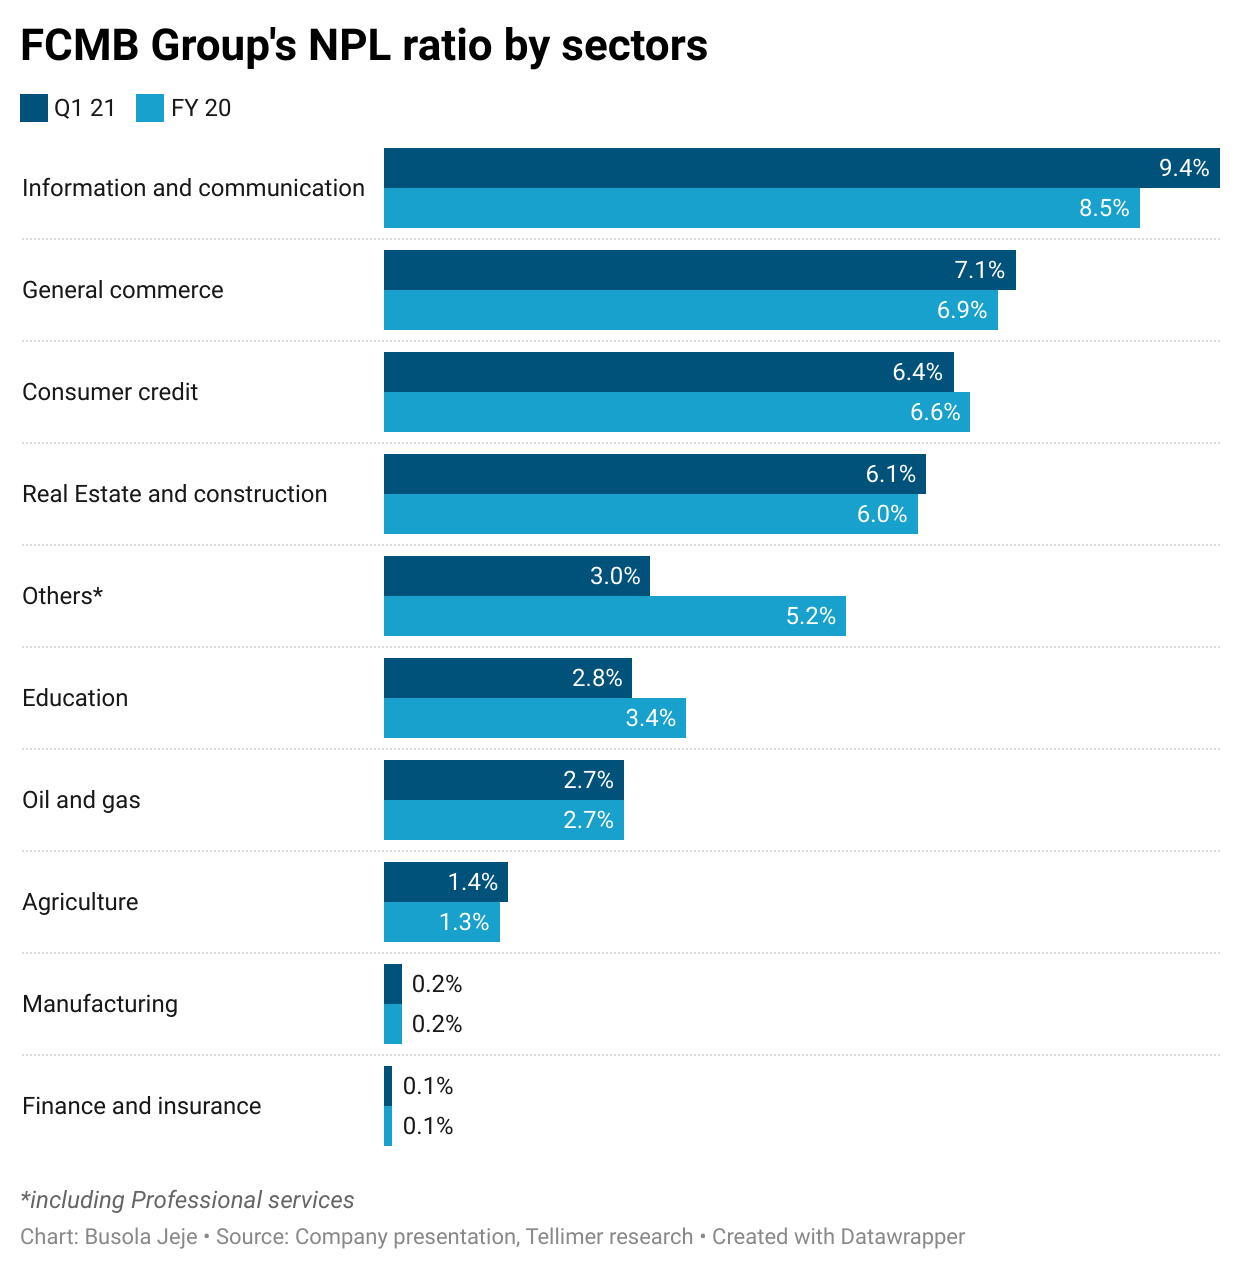 FCMB Group's NPL ratio by sectors